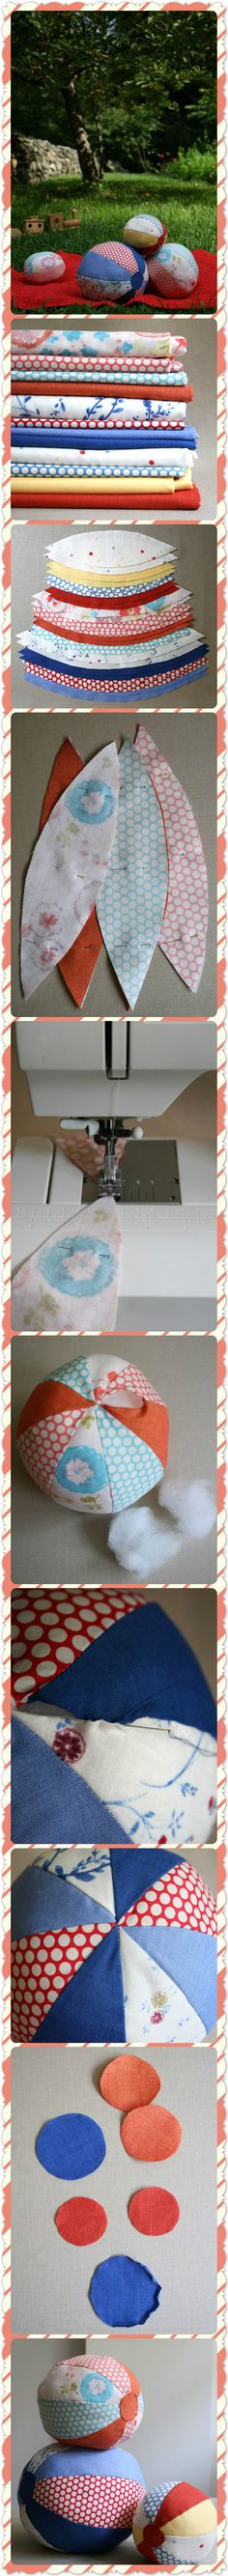 DIY FABRIC BEACH BALLS - looks like a good use for those extra scraps of material you might have lying around!